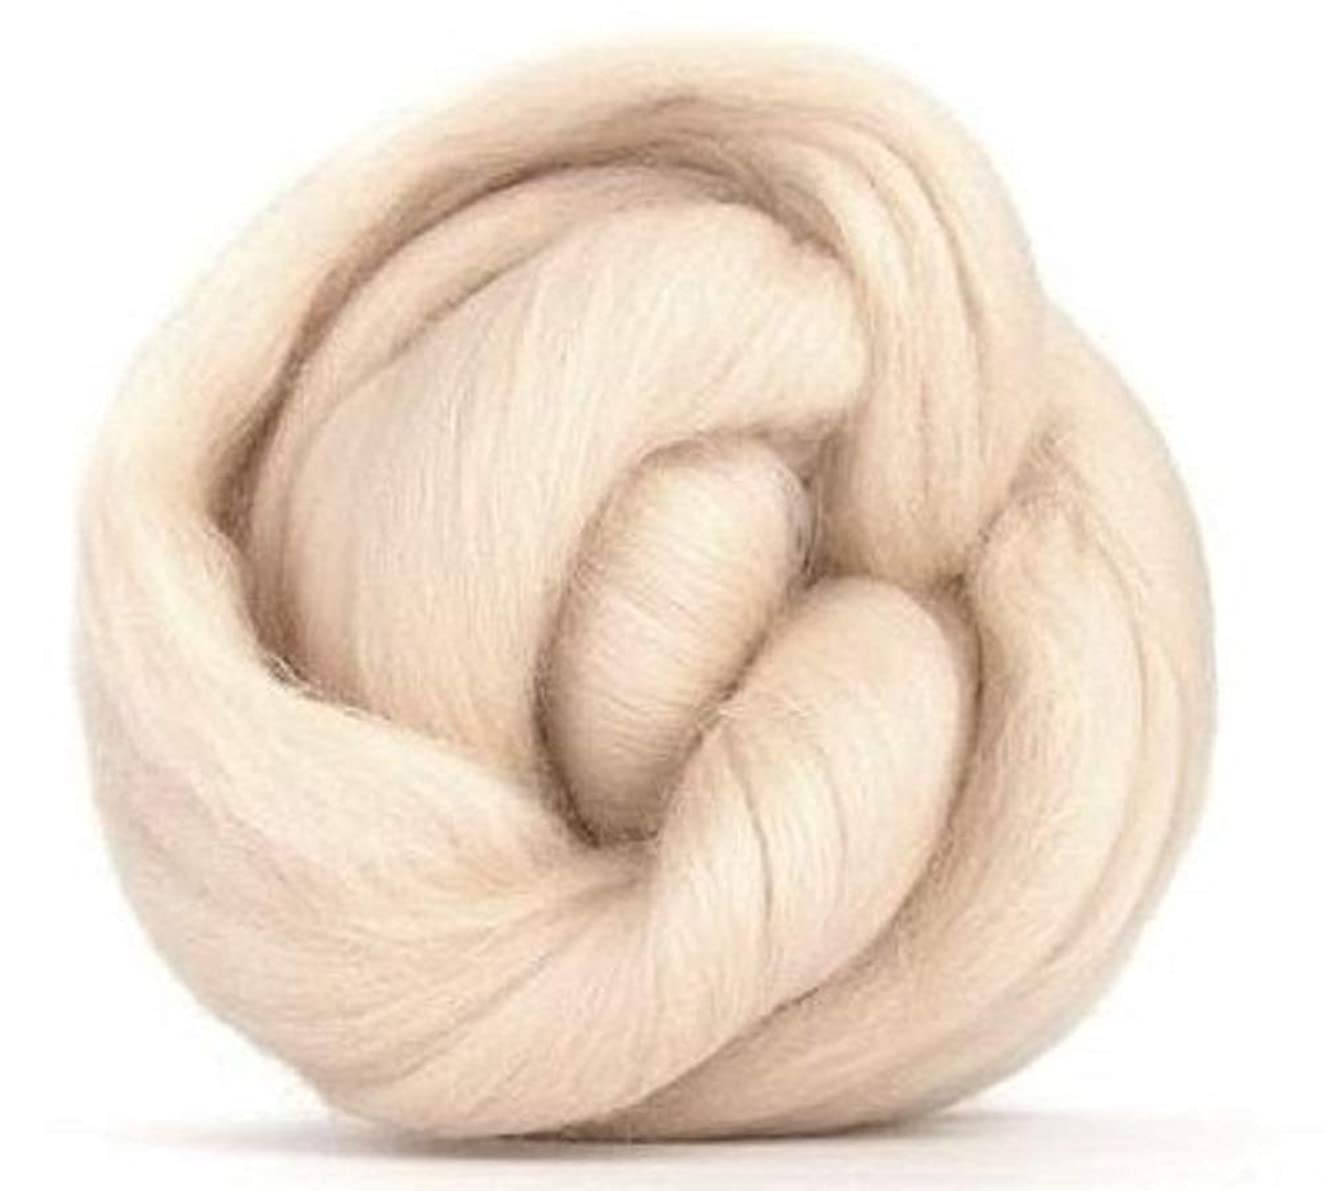 4 oz Paradise Fibers 64 Count Dyed Buff (White) Merino Top Spinning Fiber Luxuriously Soft Wool Top Roving for Spinning with Spindle or Wheel, Felting, Blending and Weaving